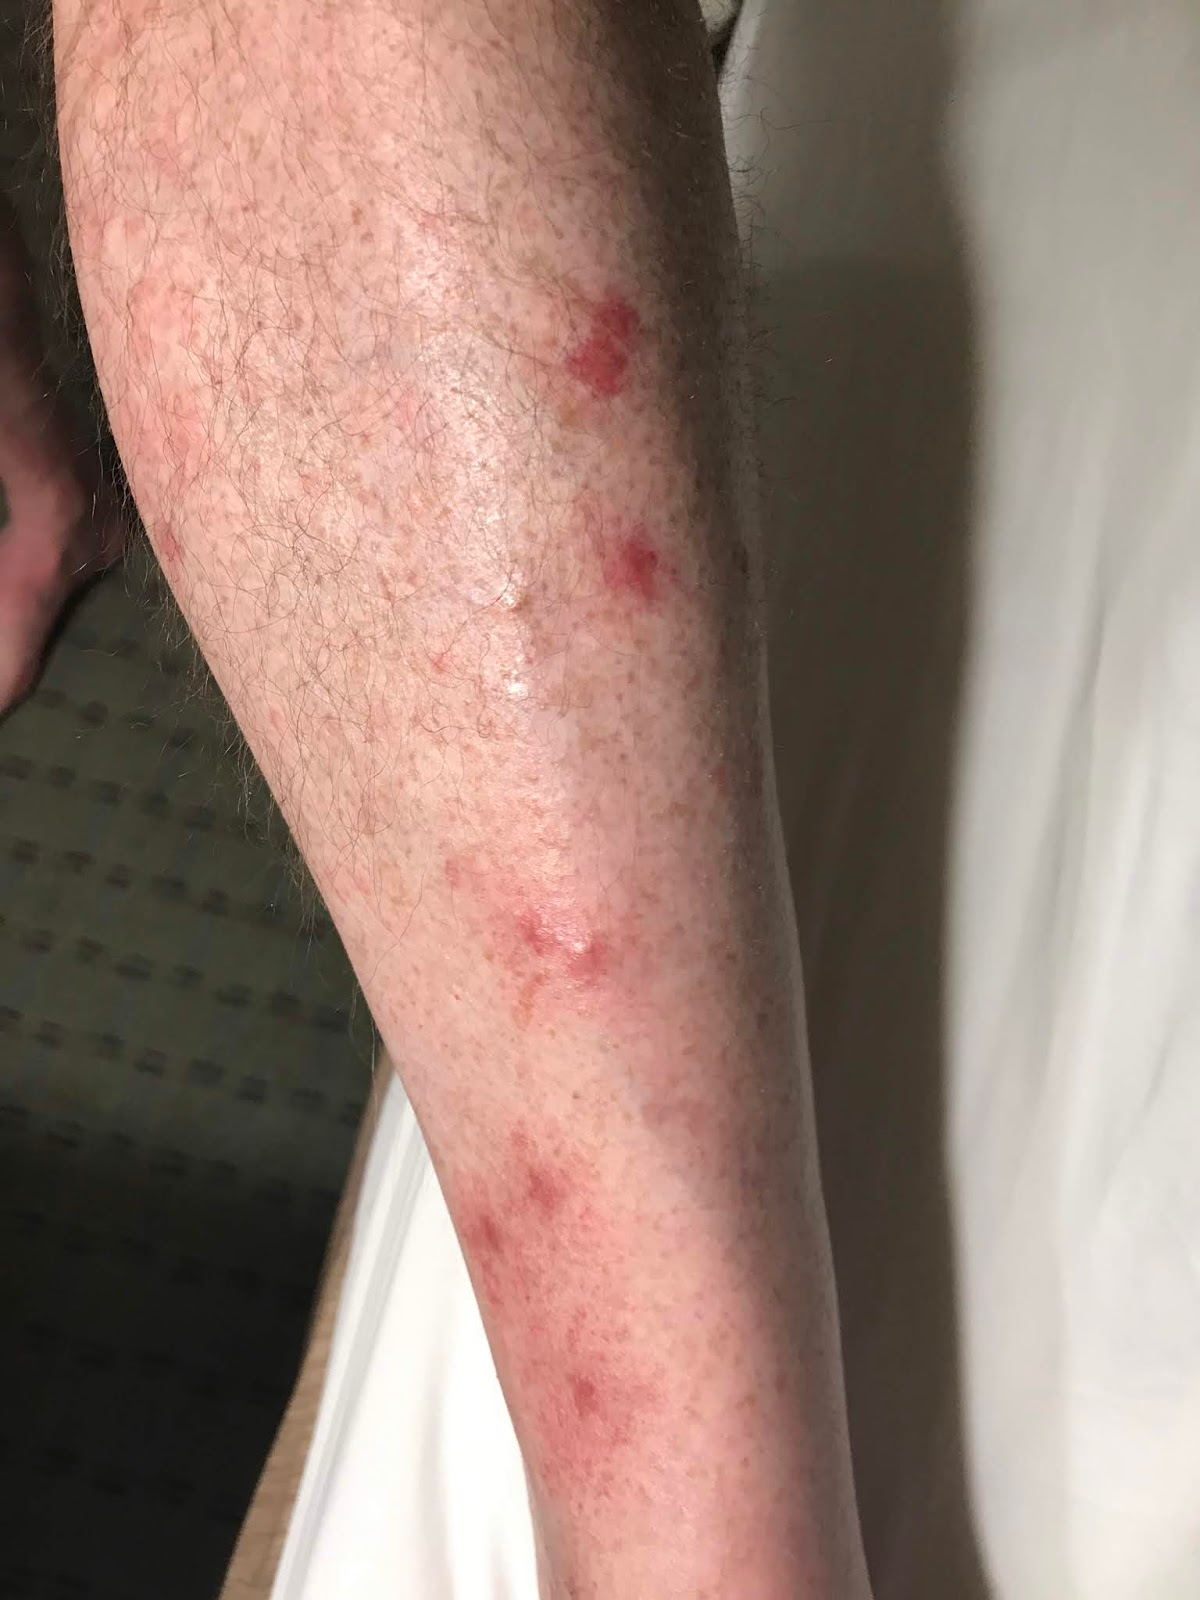 Photo of lower leg with multiple Chigger (insect) bites